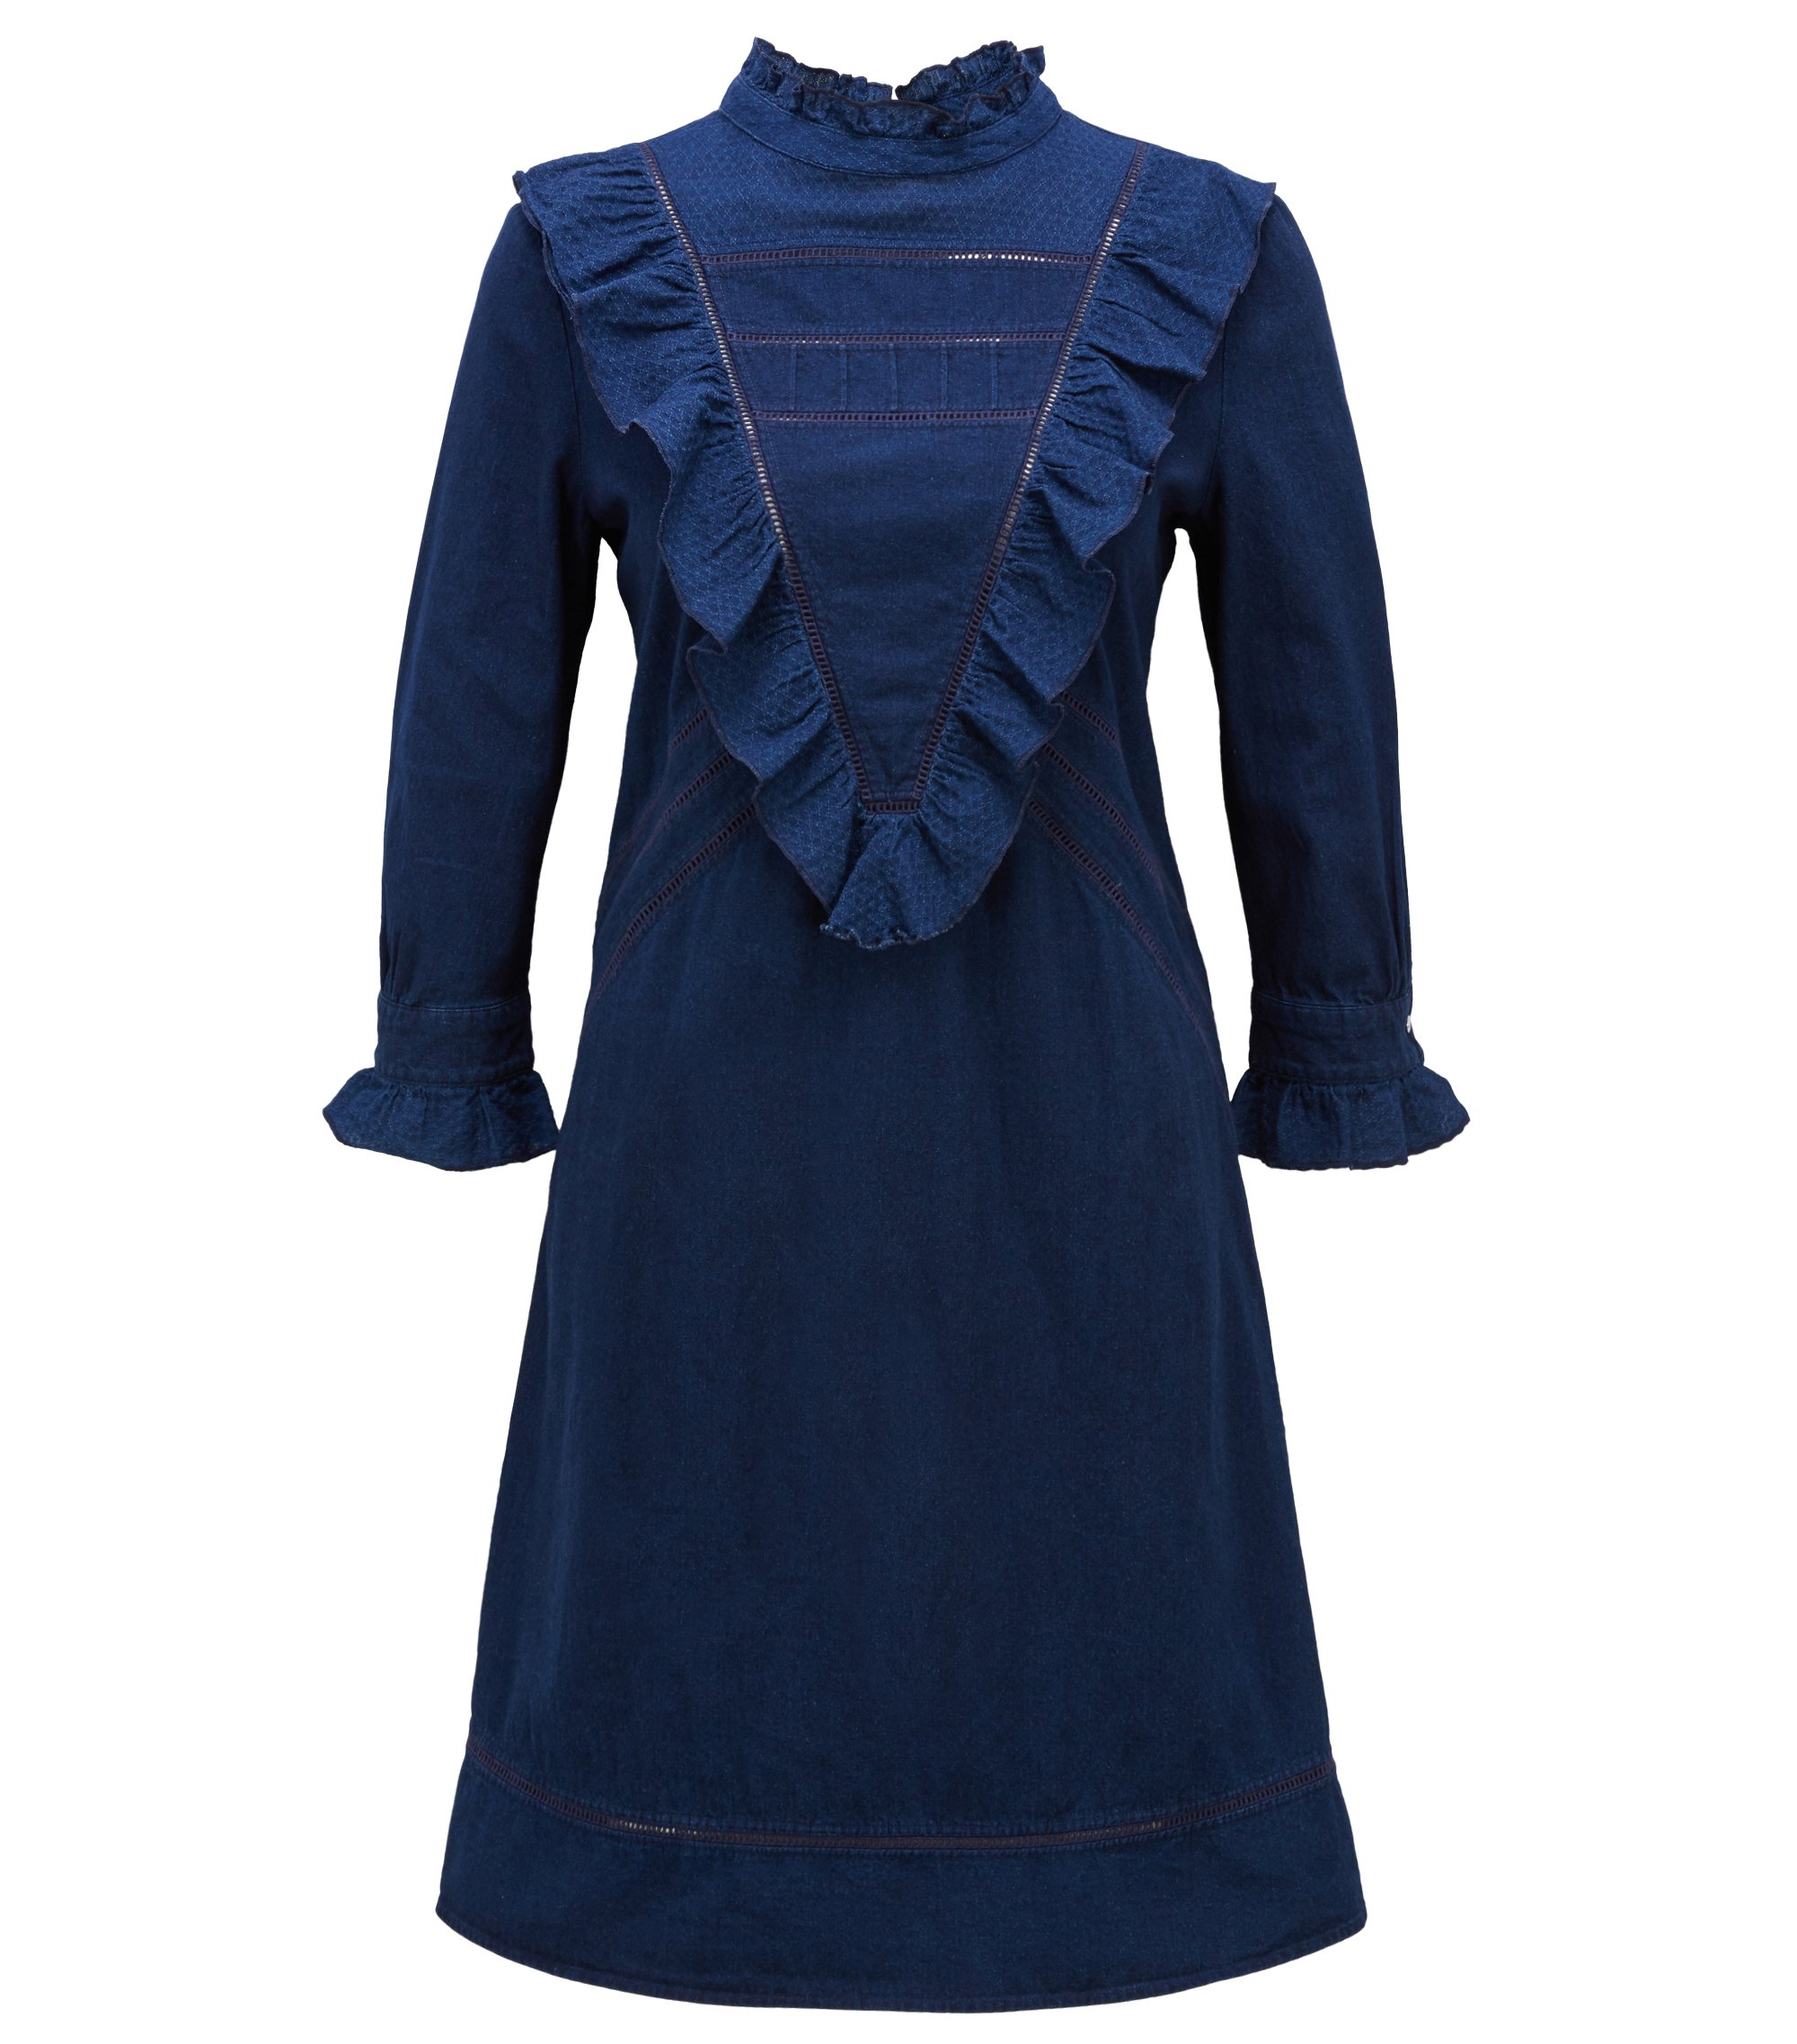 Long-sleeved dress in indigo denim with V-shaped plastron, Dark Blue